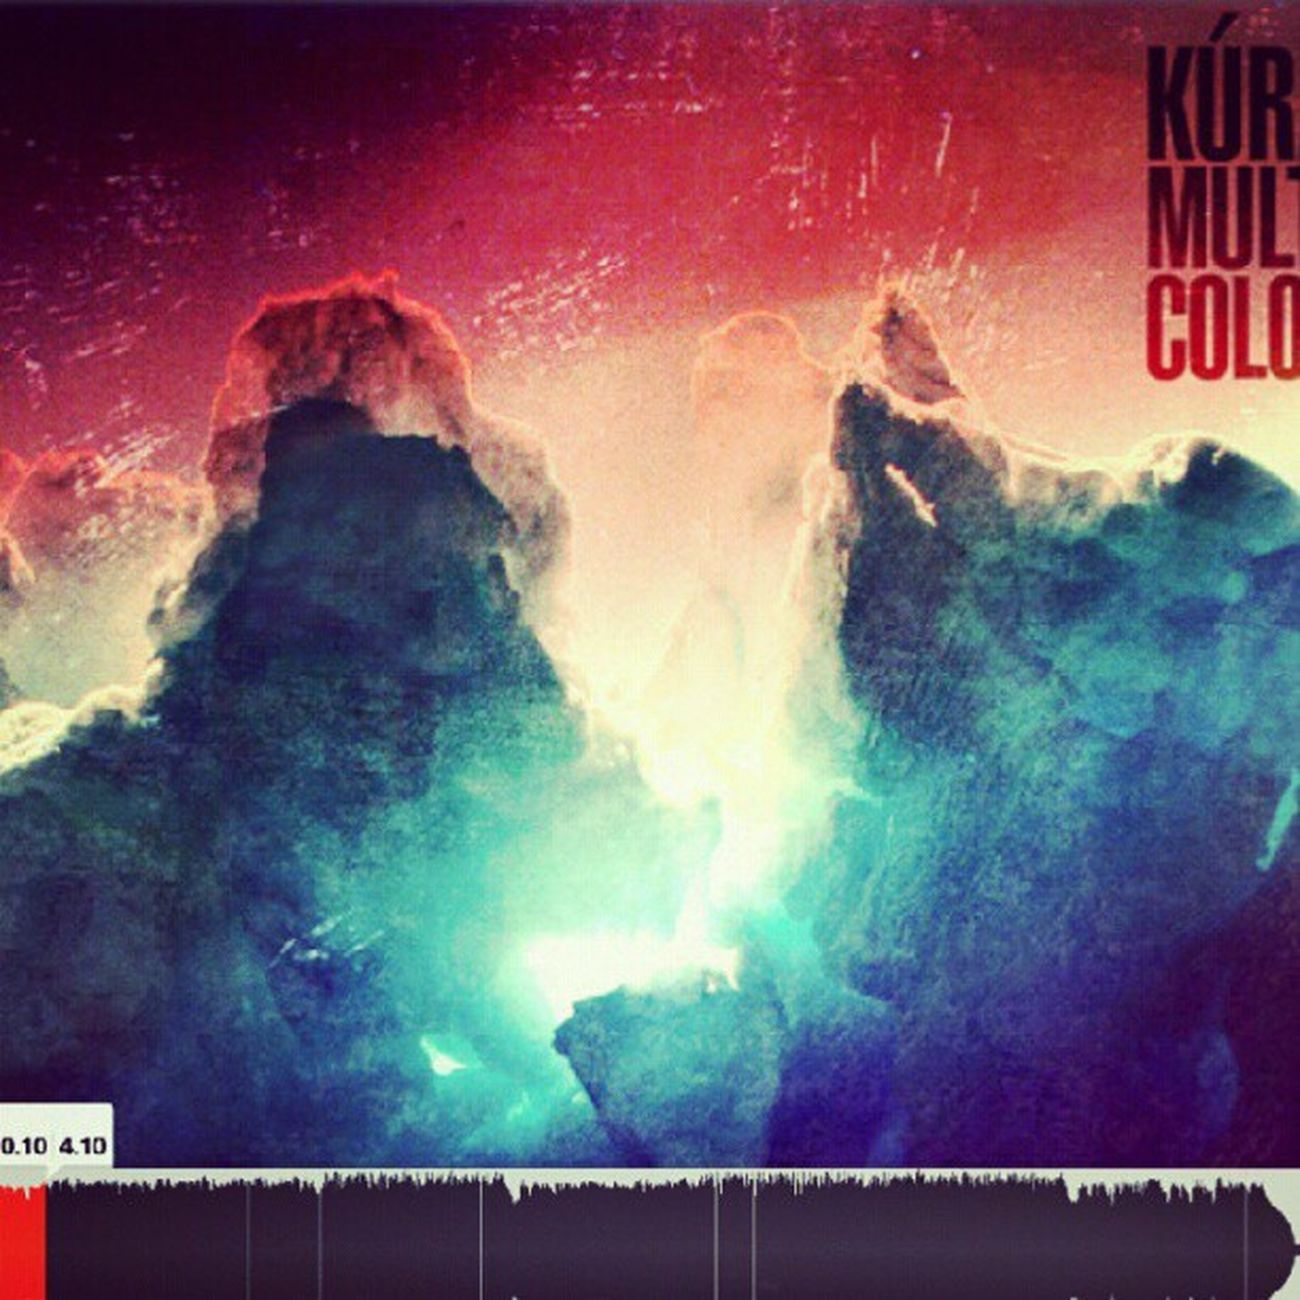 Addicted to KURA  Kuramusic recently